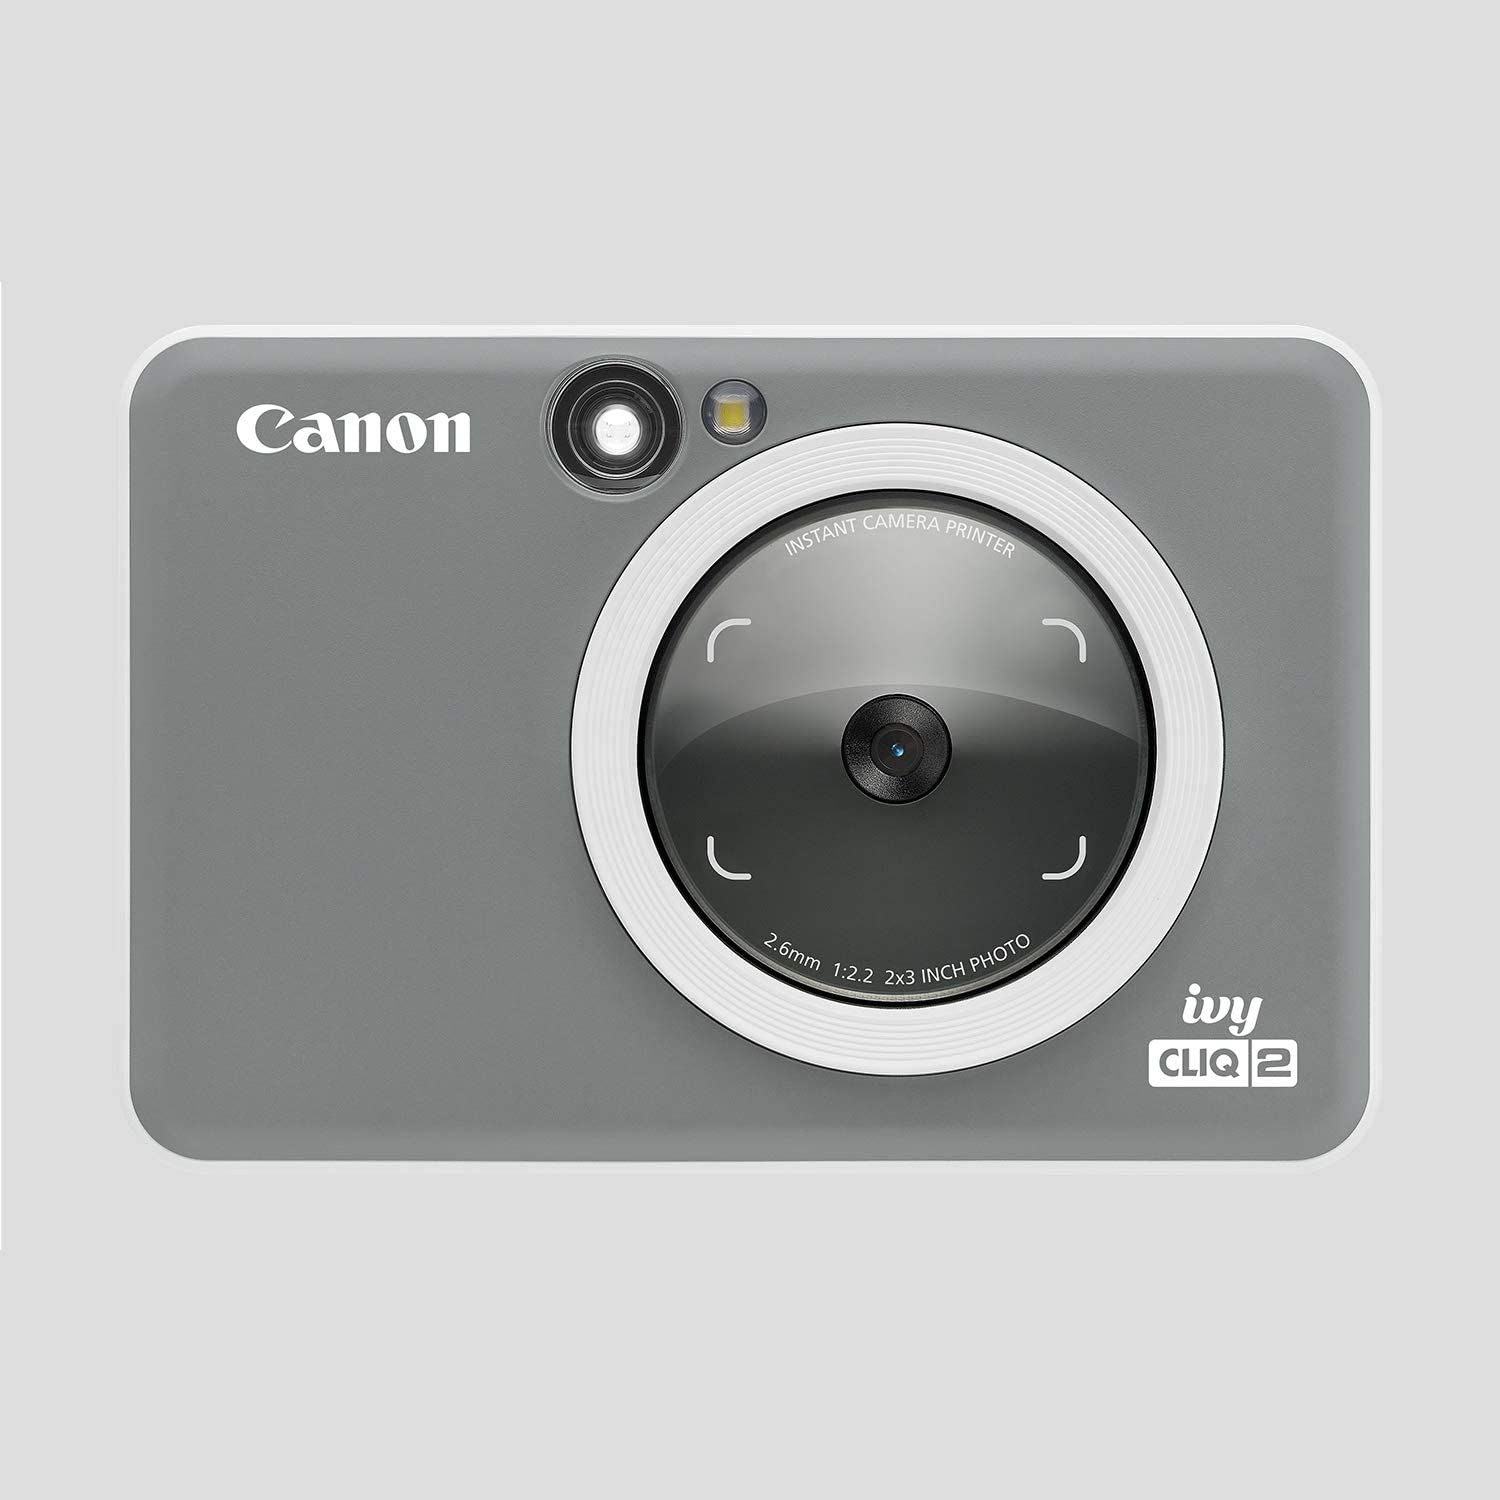 Canon Ivy CLIQ+ 2 Instant Camera Printer Midnight Navy Canon Zink Photo Paper Pack 50 Sheets Smartphone Printer